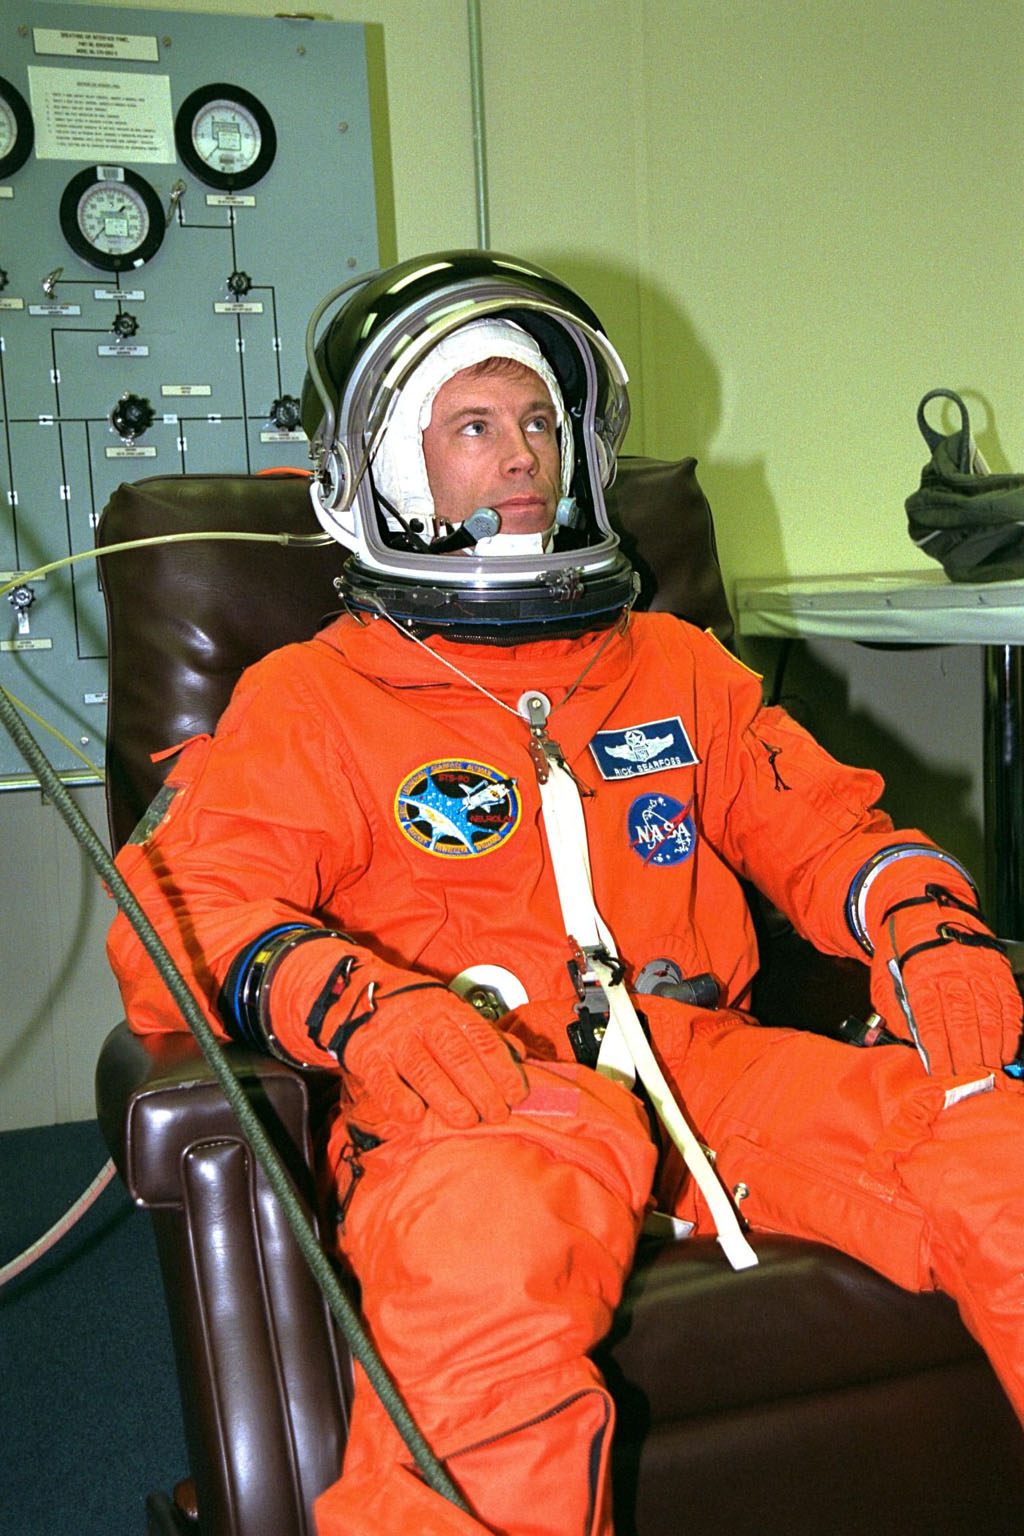 STS-90 Mission Commander Richard Searfoss sits in a chair during suitup activities in the Operations and Checkout Building. Searfoss and the rest of his flight crew will shortly depart for Launch Pad 39B, where the Space Shuttle Columbia awaits a second liftoff attempt at 2:19 p.m. EDT. His third trip into space, Searfoss commands this life sciences research flight that will focus on the most complex and least understood part of the human body the nervous system. Neurolab will examine the effects of spaceflight on the brain, spinal cord, peripheral nerves and sensory organs in the human body